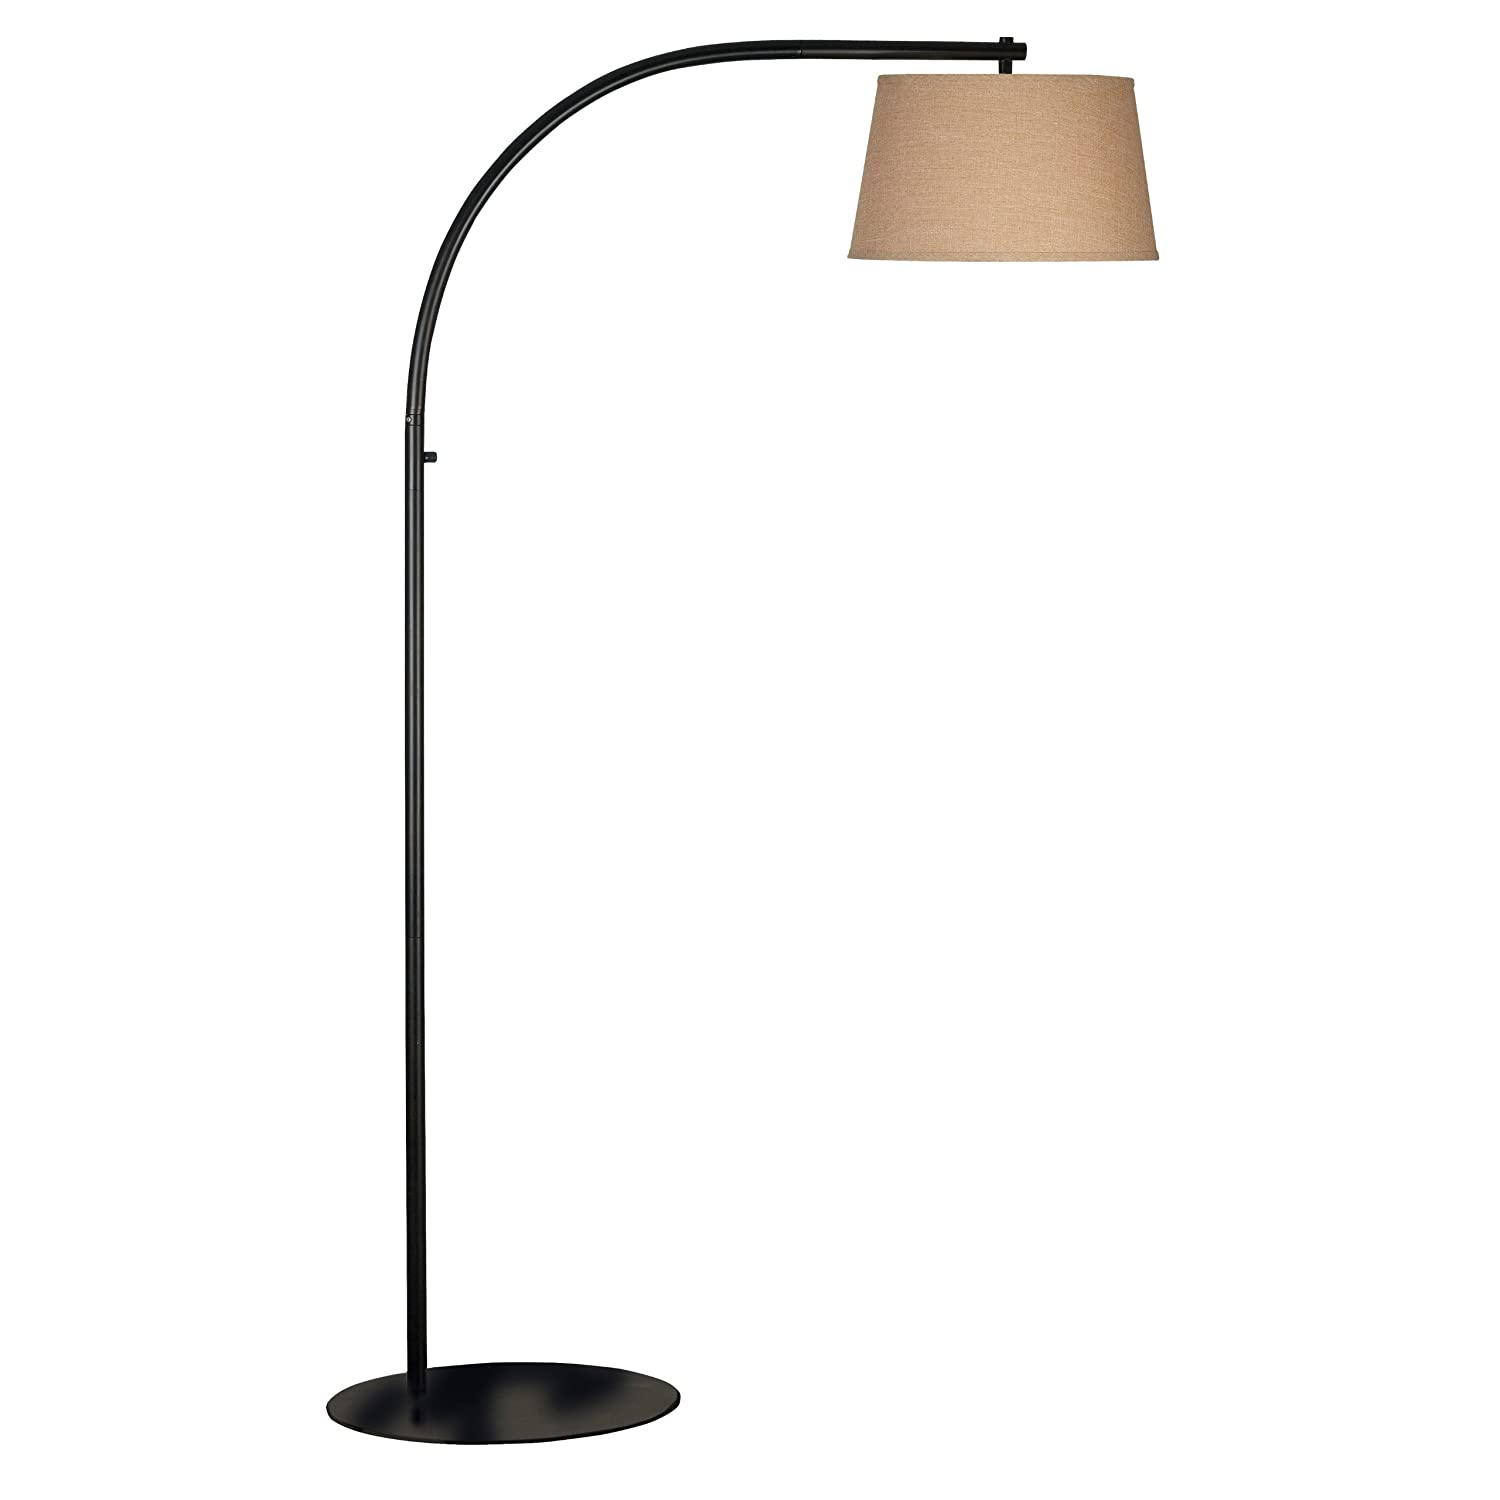 Delightful Kenroy Home 20953ORB Sweep 150 Watt 69 Inch Arc Style Metal Floor Lamp,  Oil Rubbed Bronze   Close To Ceiling Light Fixtures   Amazon.com